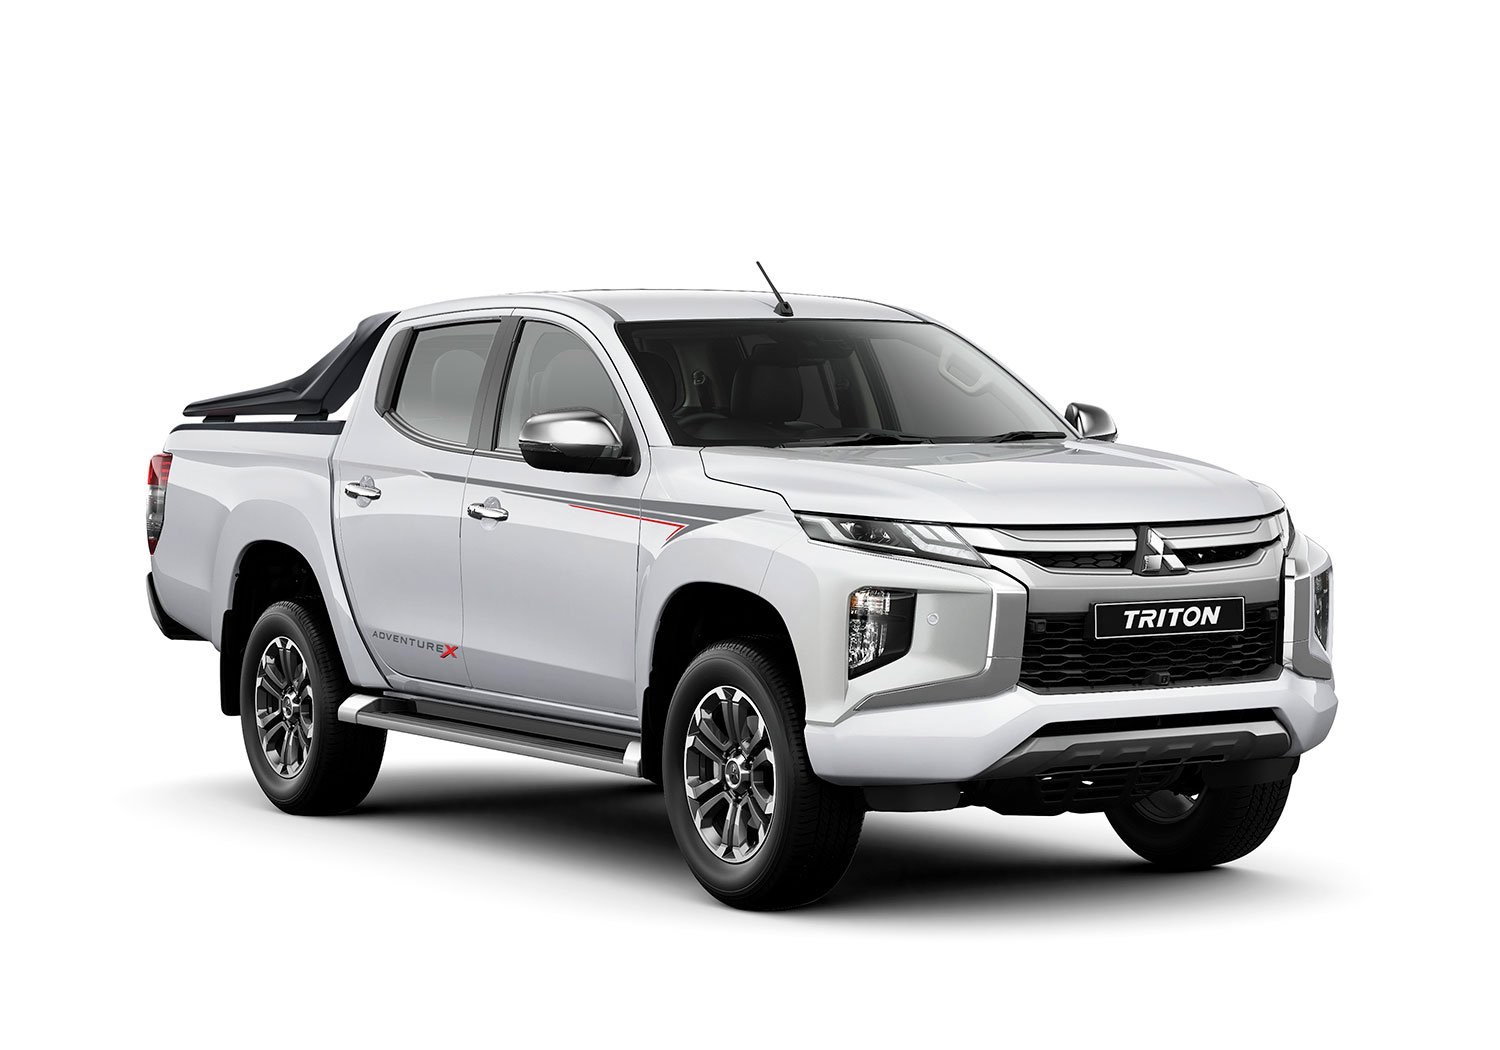 Mitsubishi Motors Extended CNY Promotions Until End February 2020